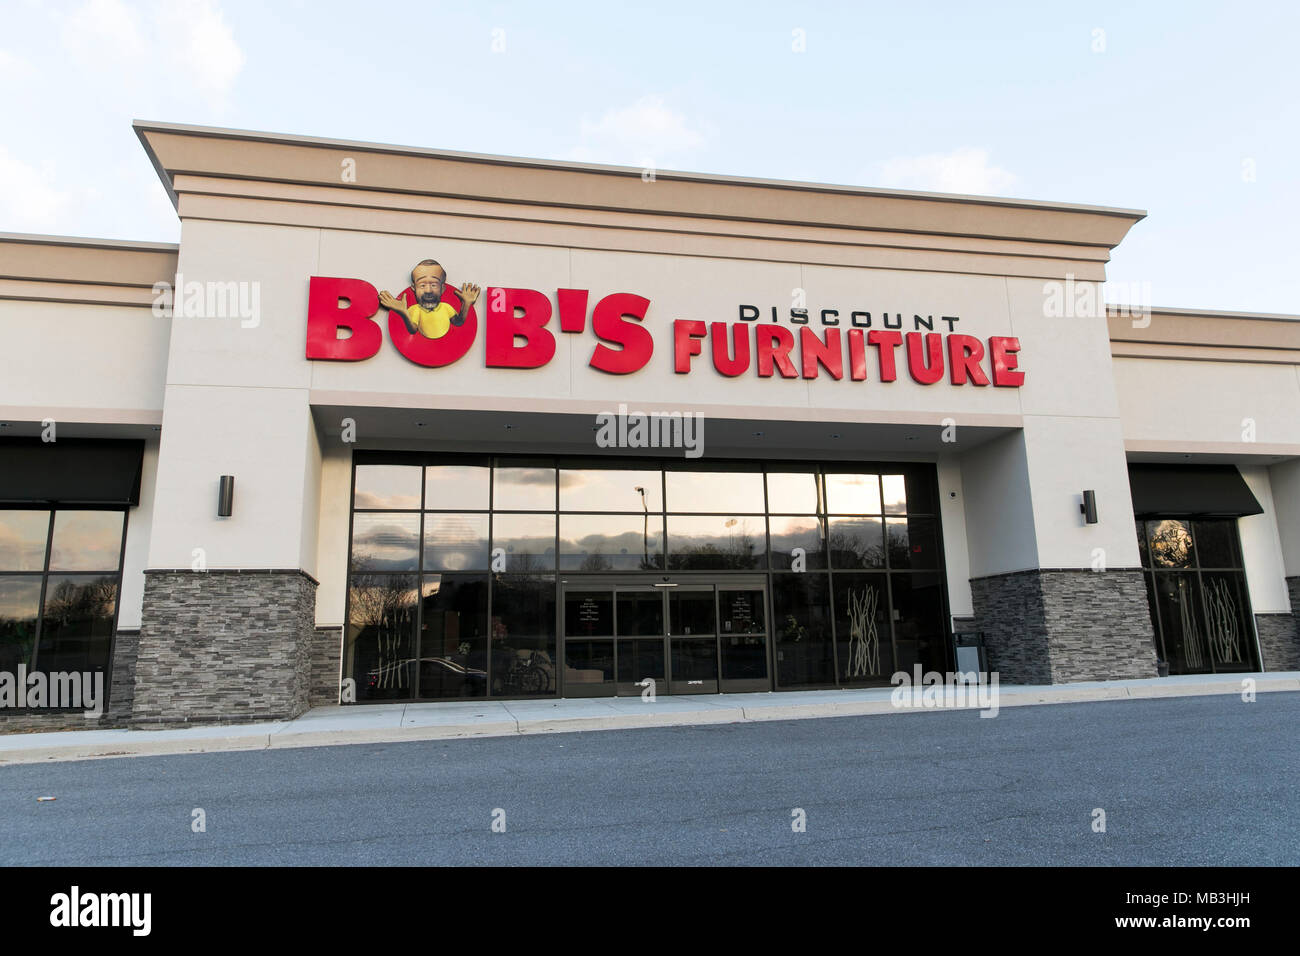 A Bobu0027s Discount Furniture Logo Seen On A Retail Store Front In Hagerstown,  Maryland On April 5, 2018.